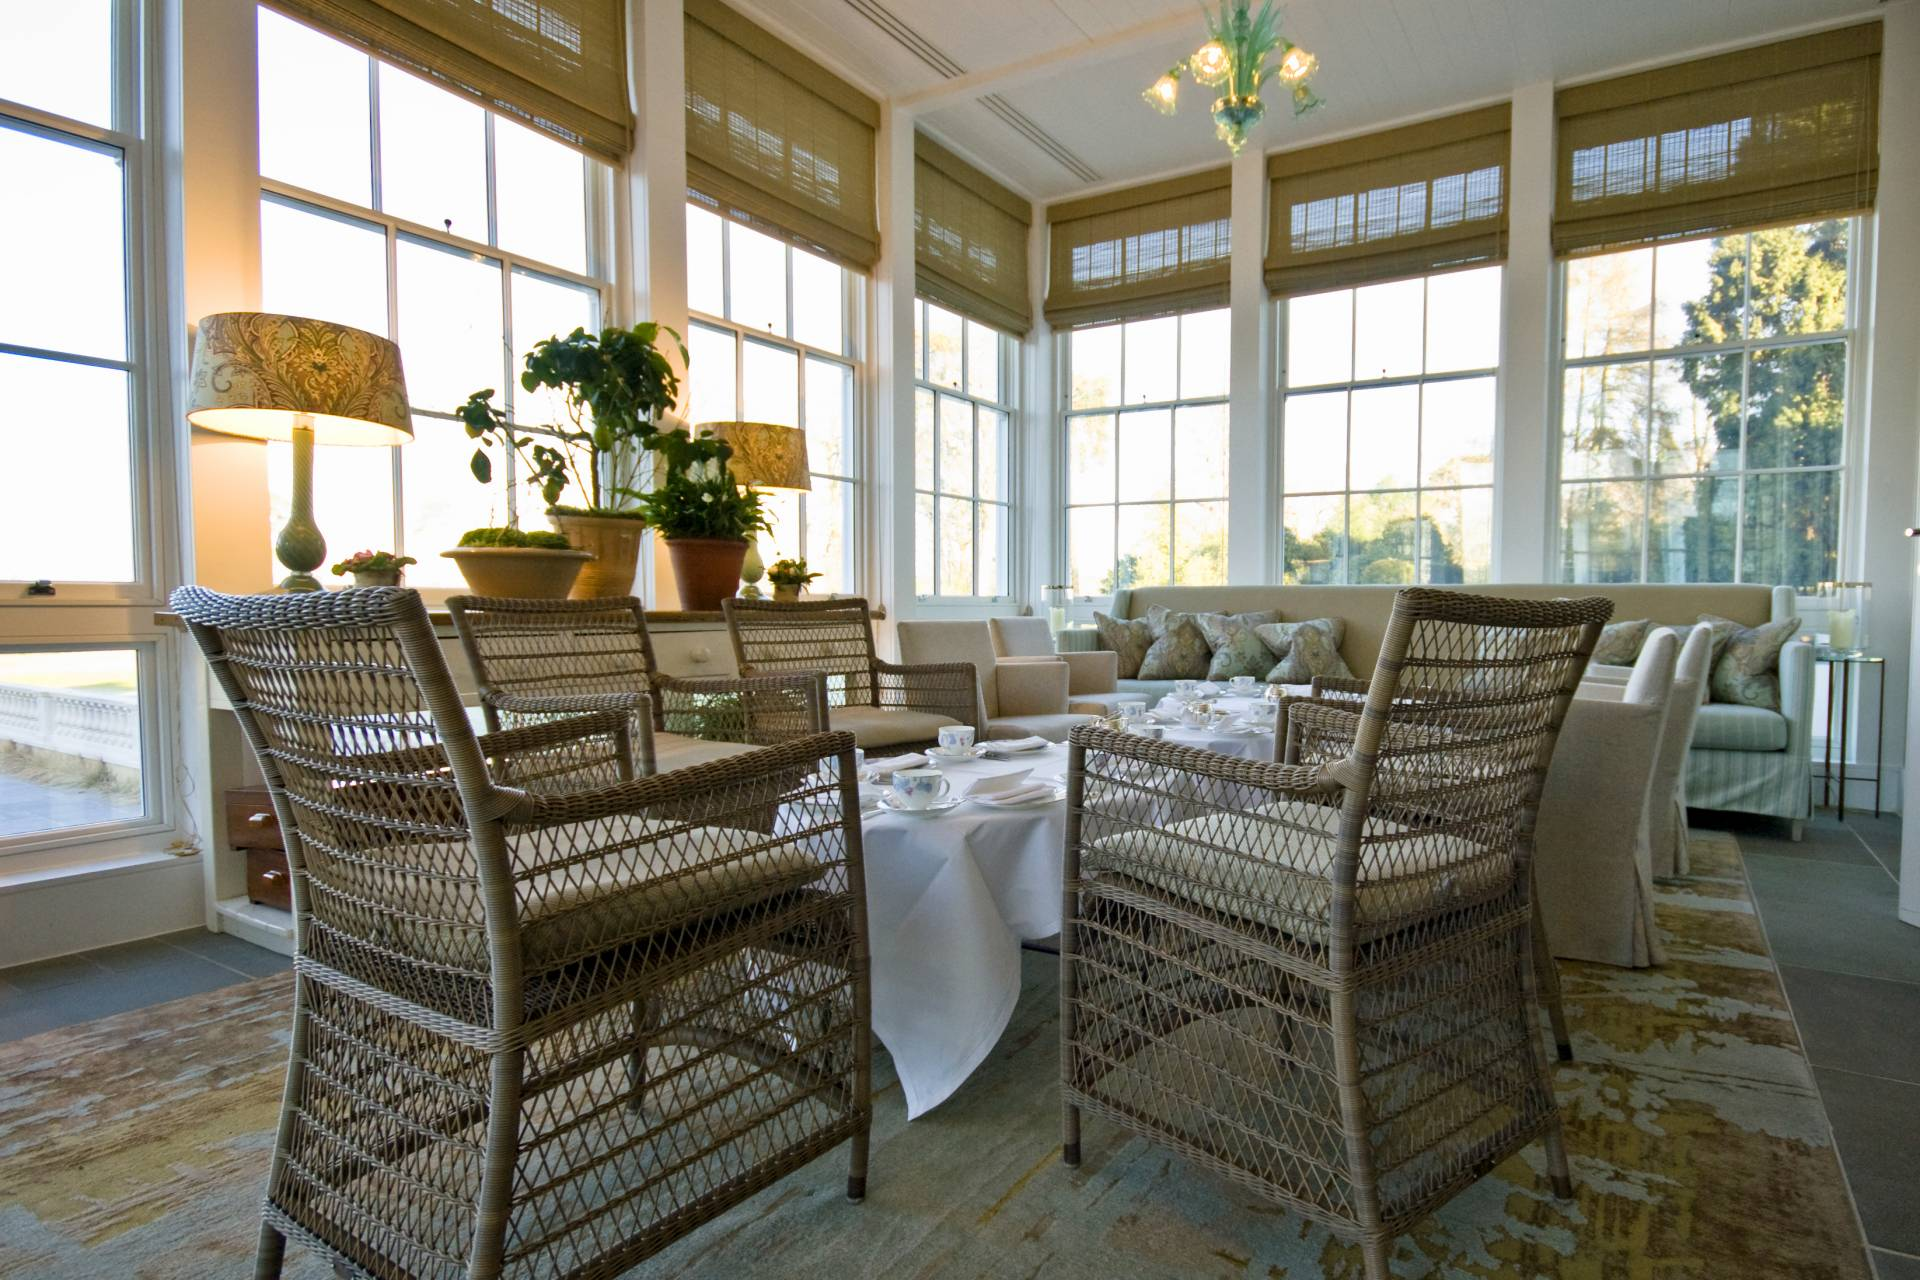 Coworth Park dining area in conservatory